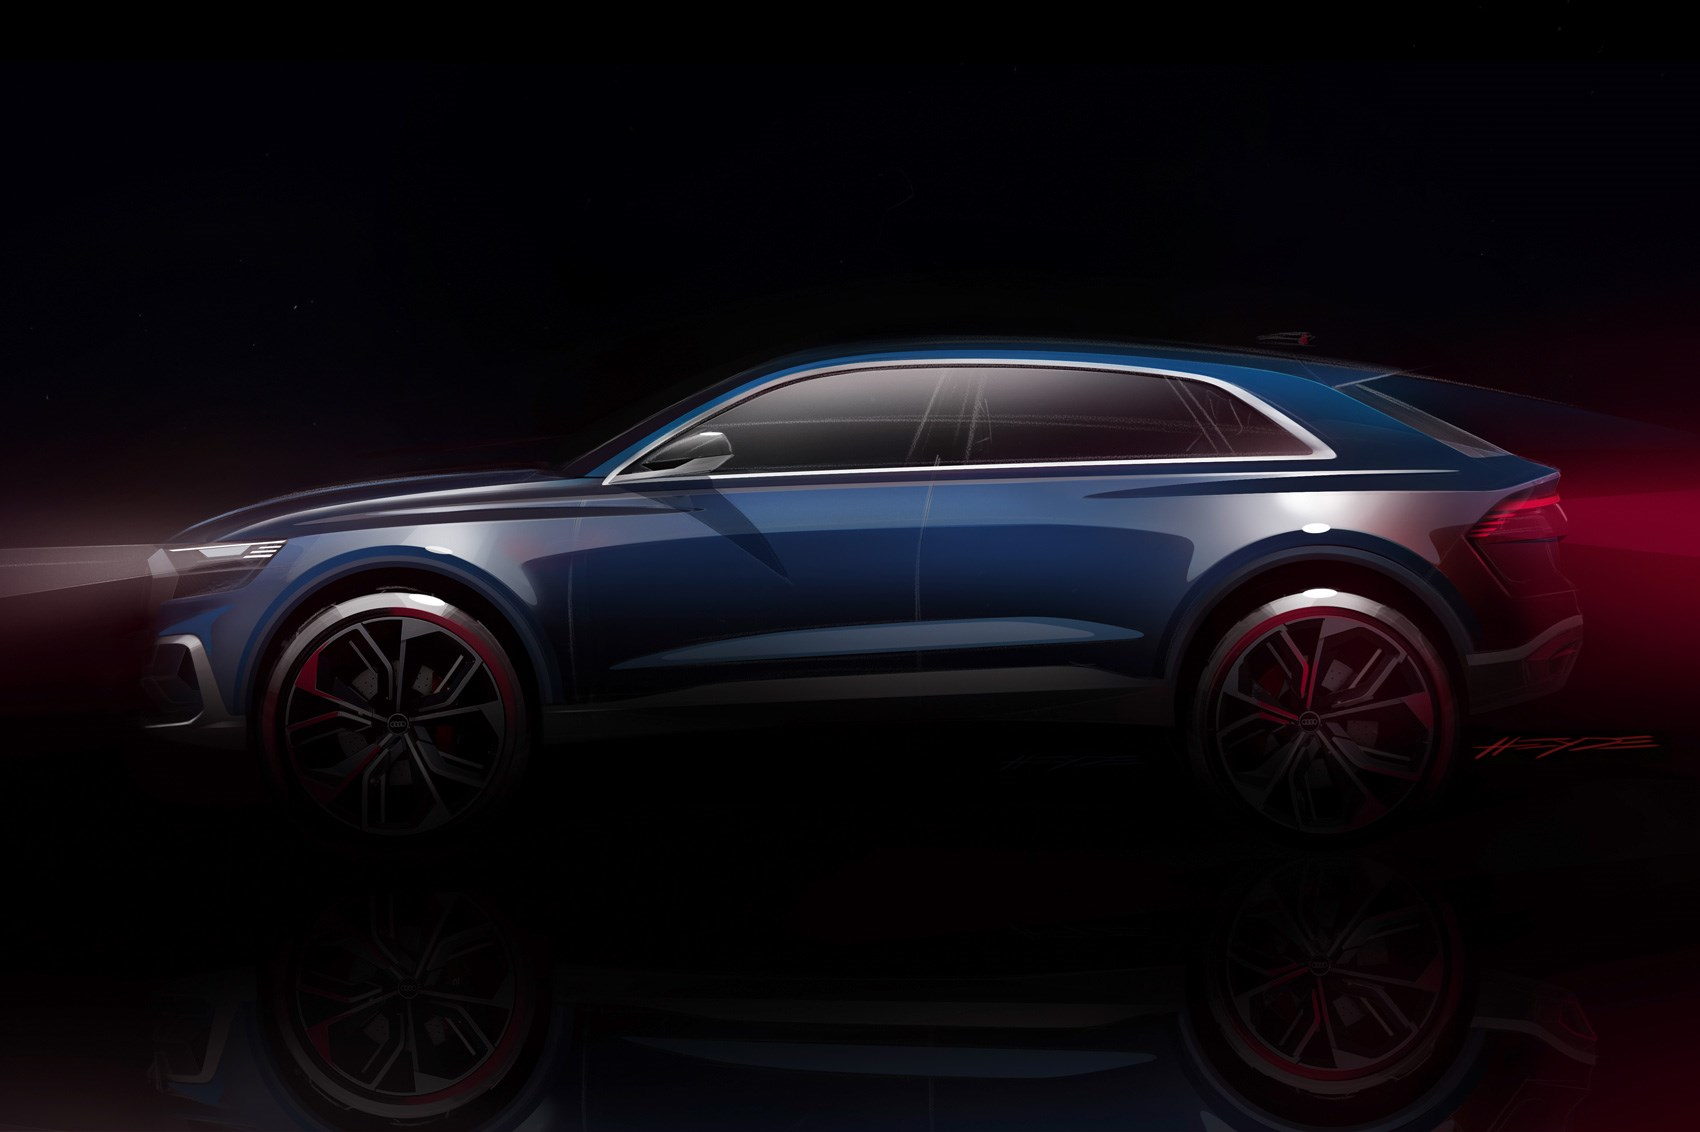 New Audi Q8 luxury SUV revealed in official design sketches